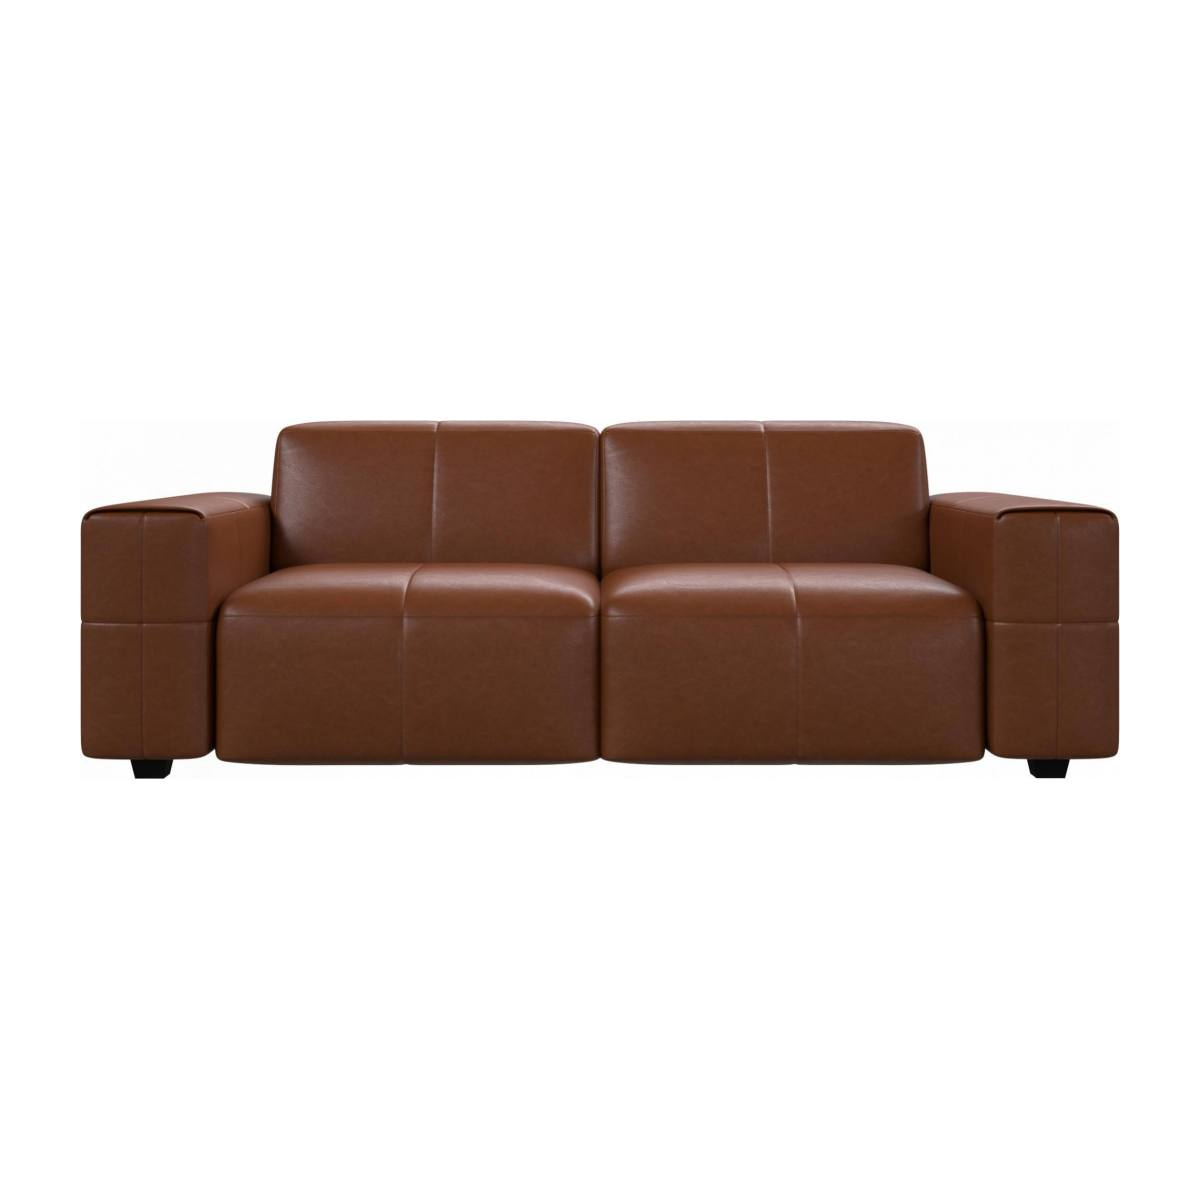 3 seater sofa in Vintage aniline leather, old chestnut n°1